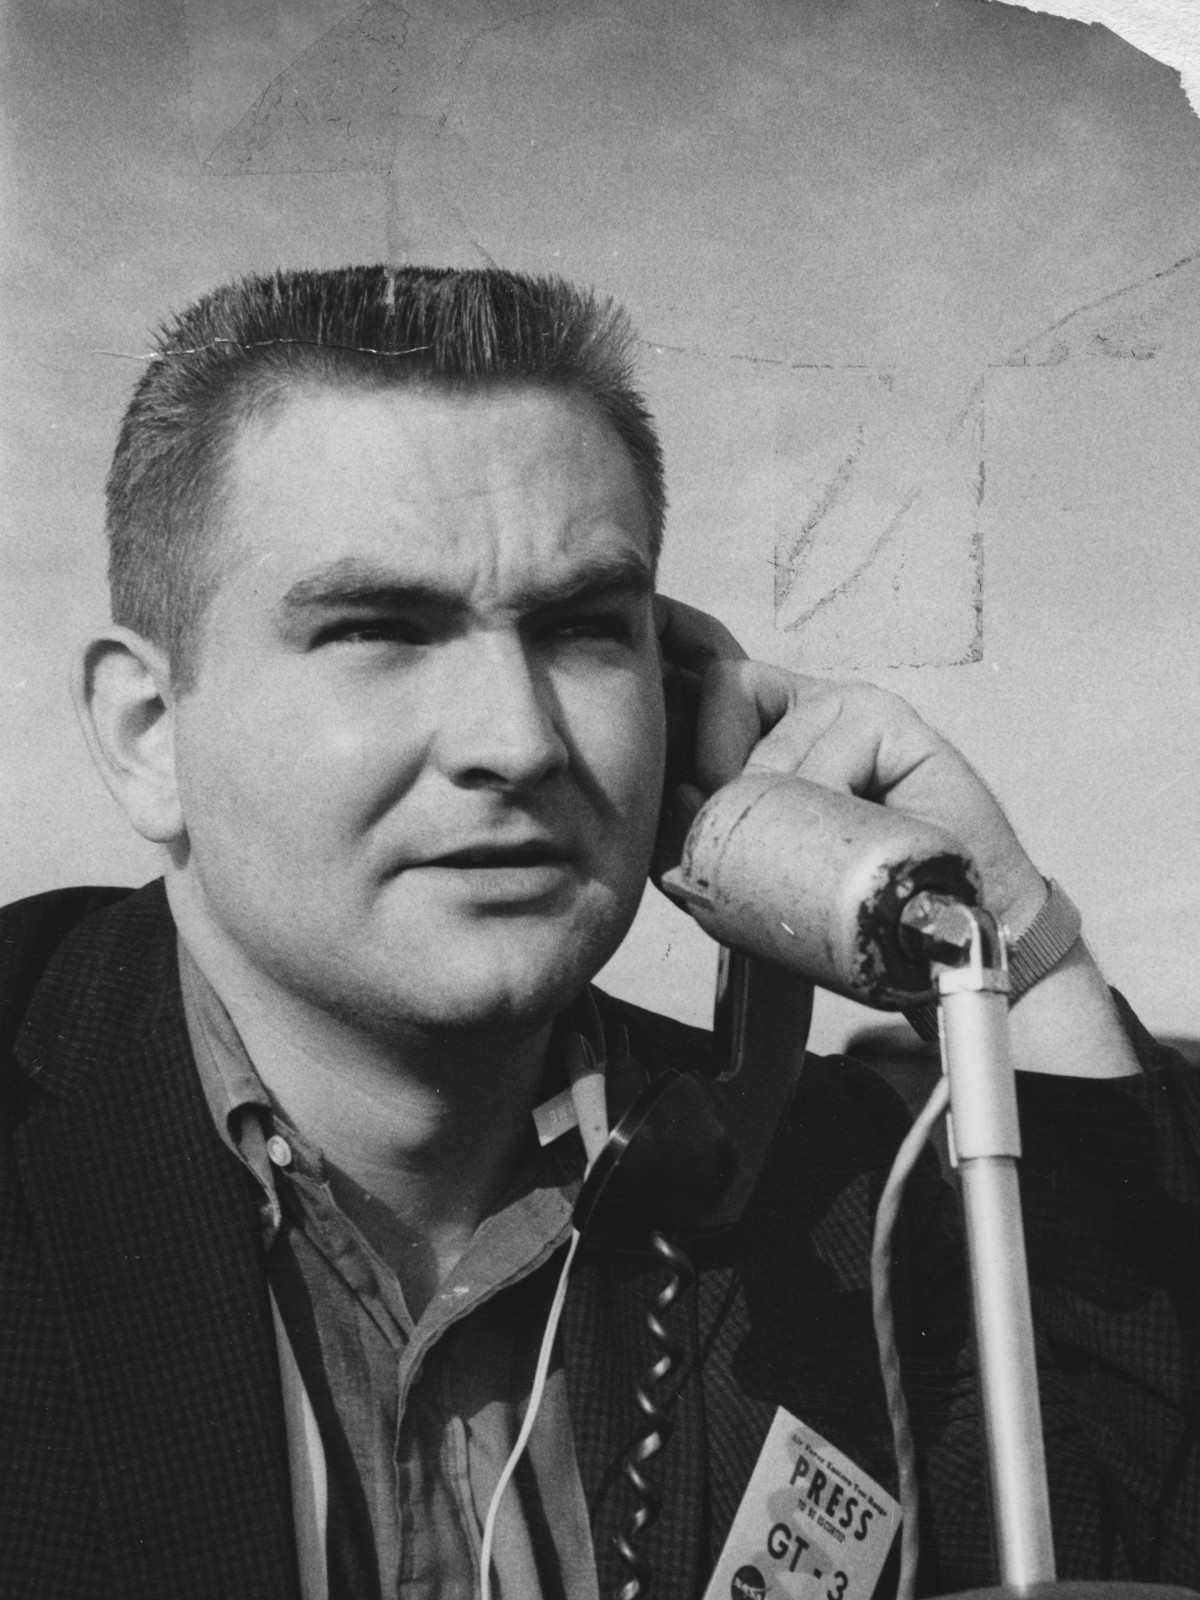 Dave Ward covering the Gemini 3 Mission in March, 1965